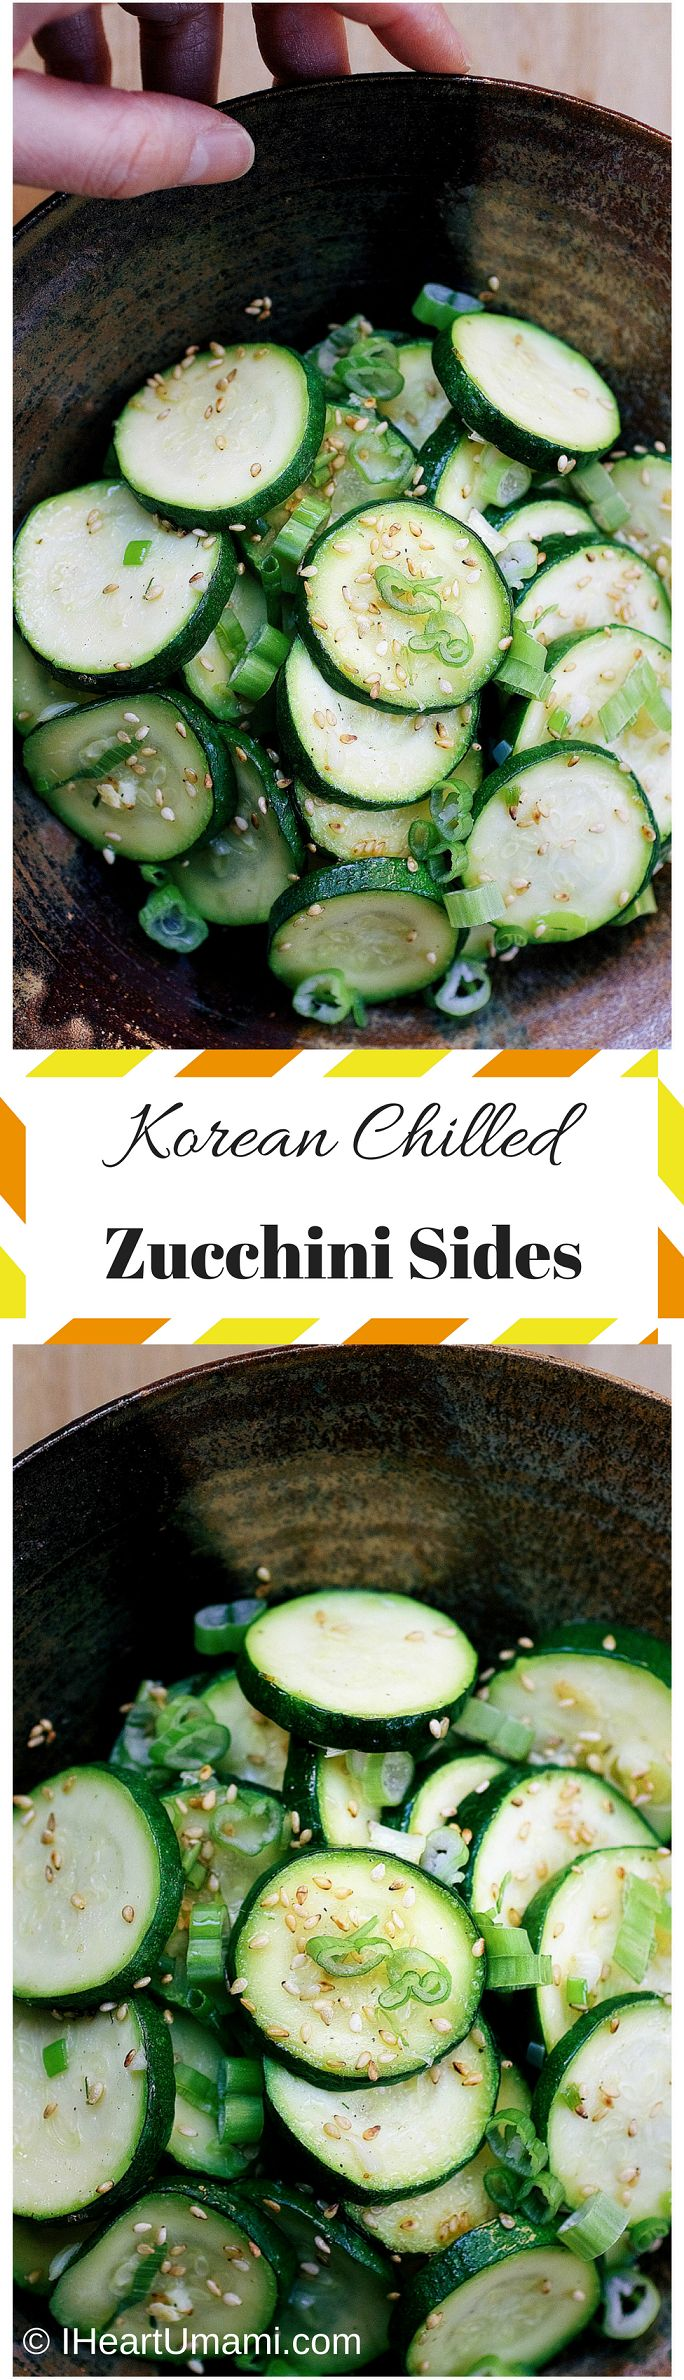 Korean Chilled Zucchini Sides. A delicious zucchini side dish to help you eat more veggies. Paleo,Keto, Whole30, Vegetarian friendly. Follow the pin to learn how to make this insanely delicious dish !